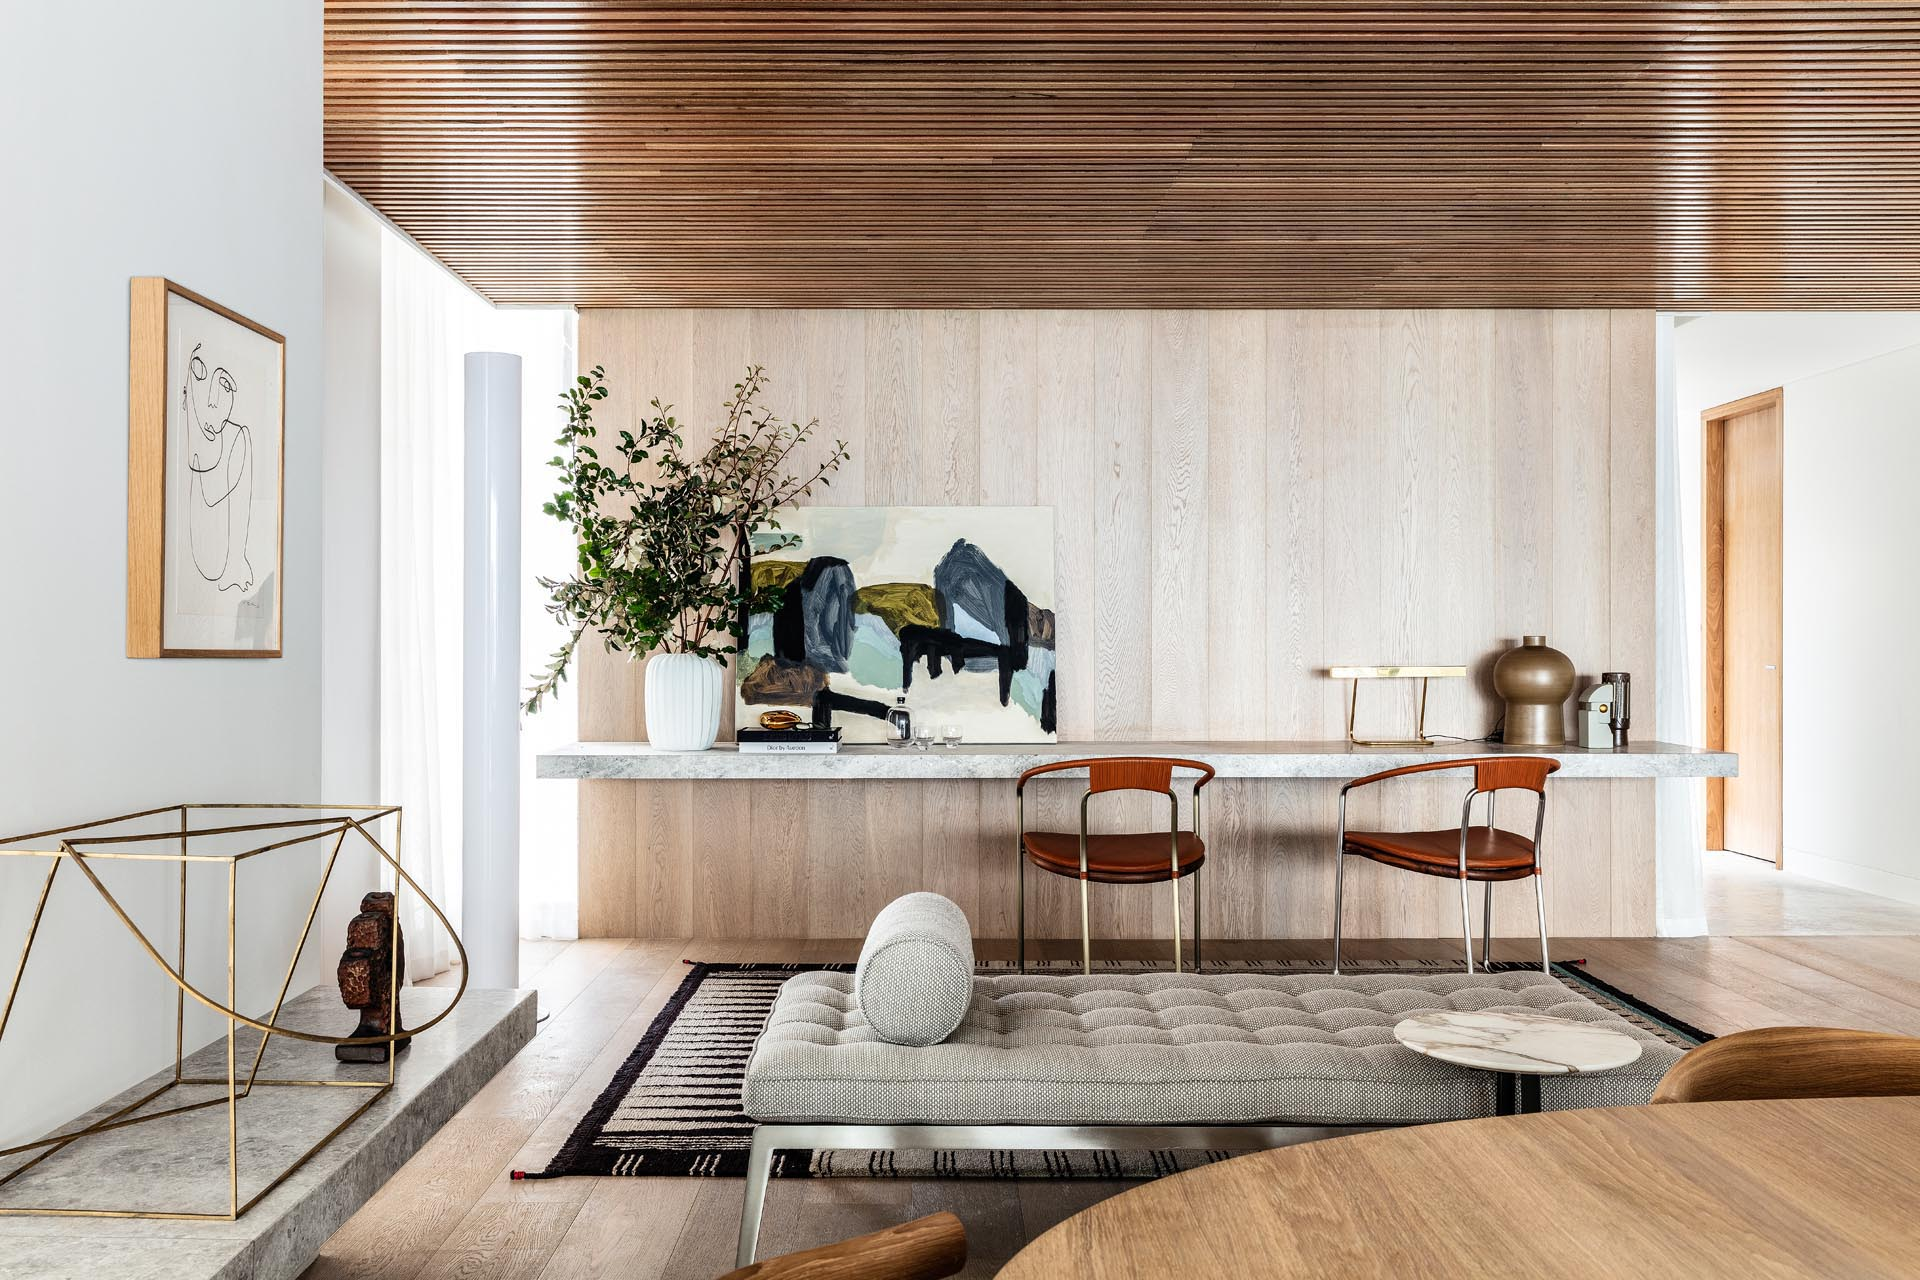 A floating stone desk lines the wall, while wood slats cover the ceiling.